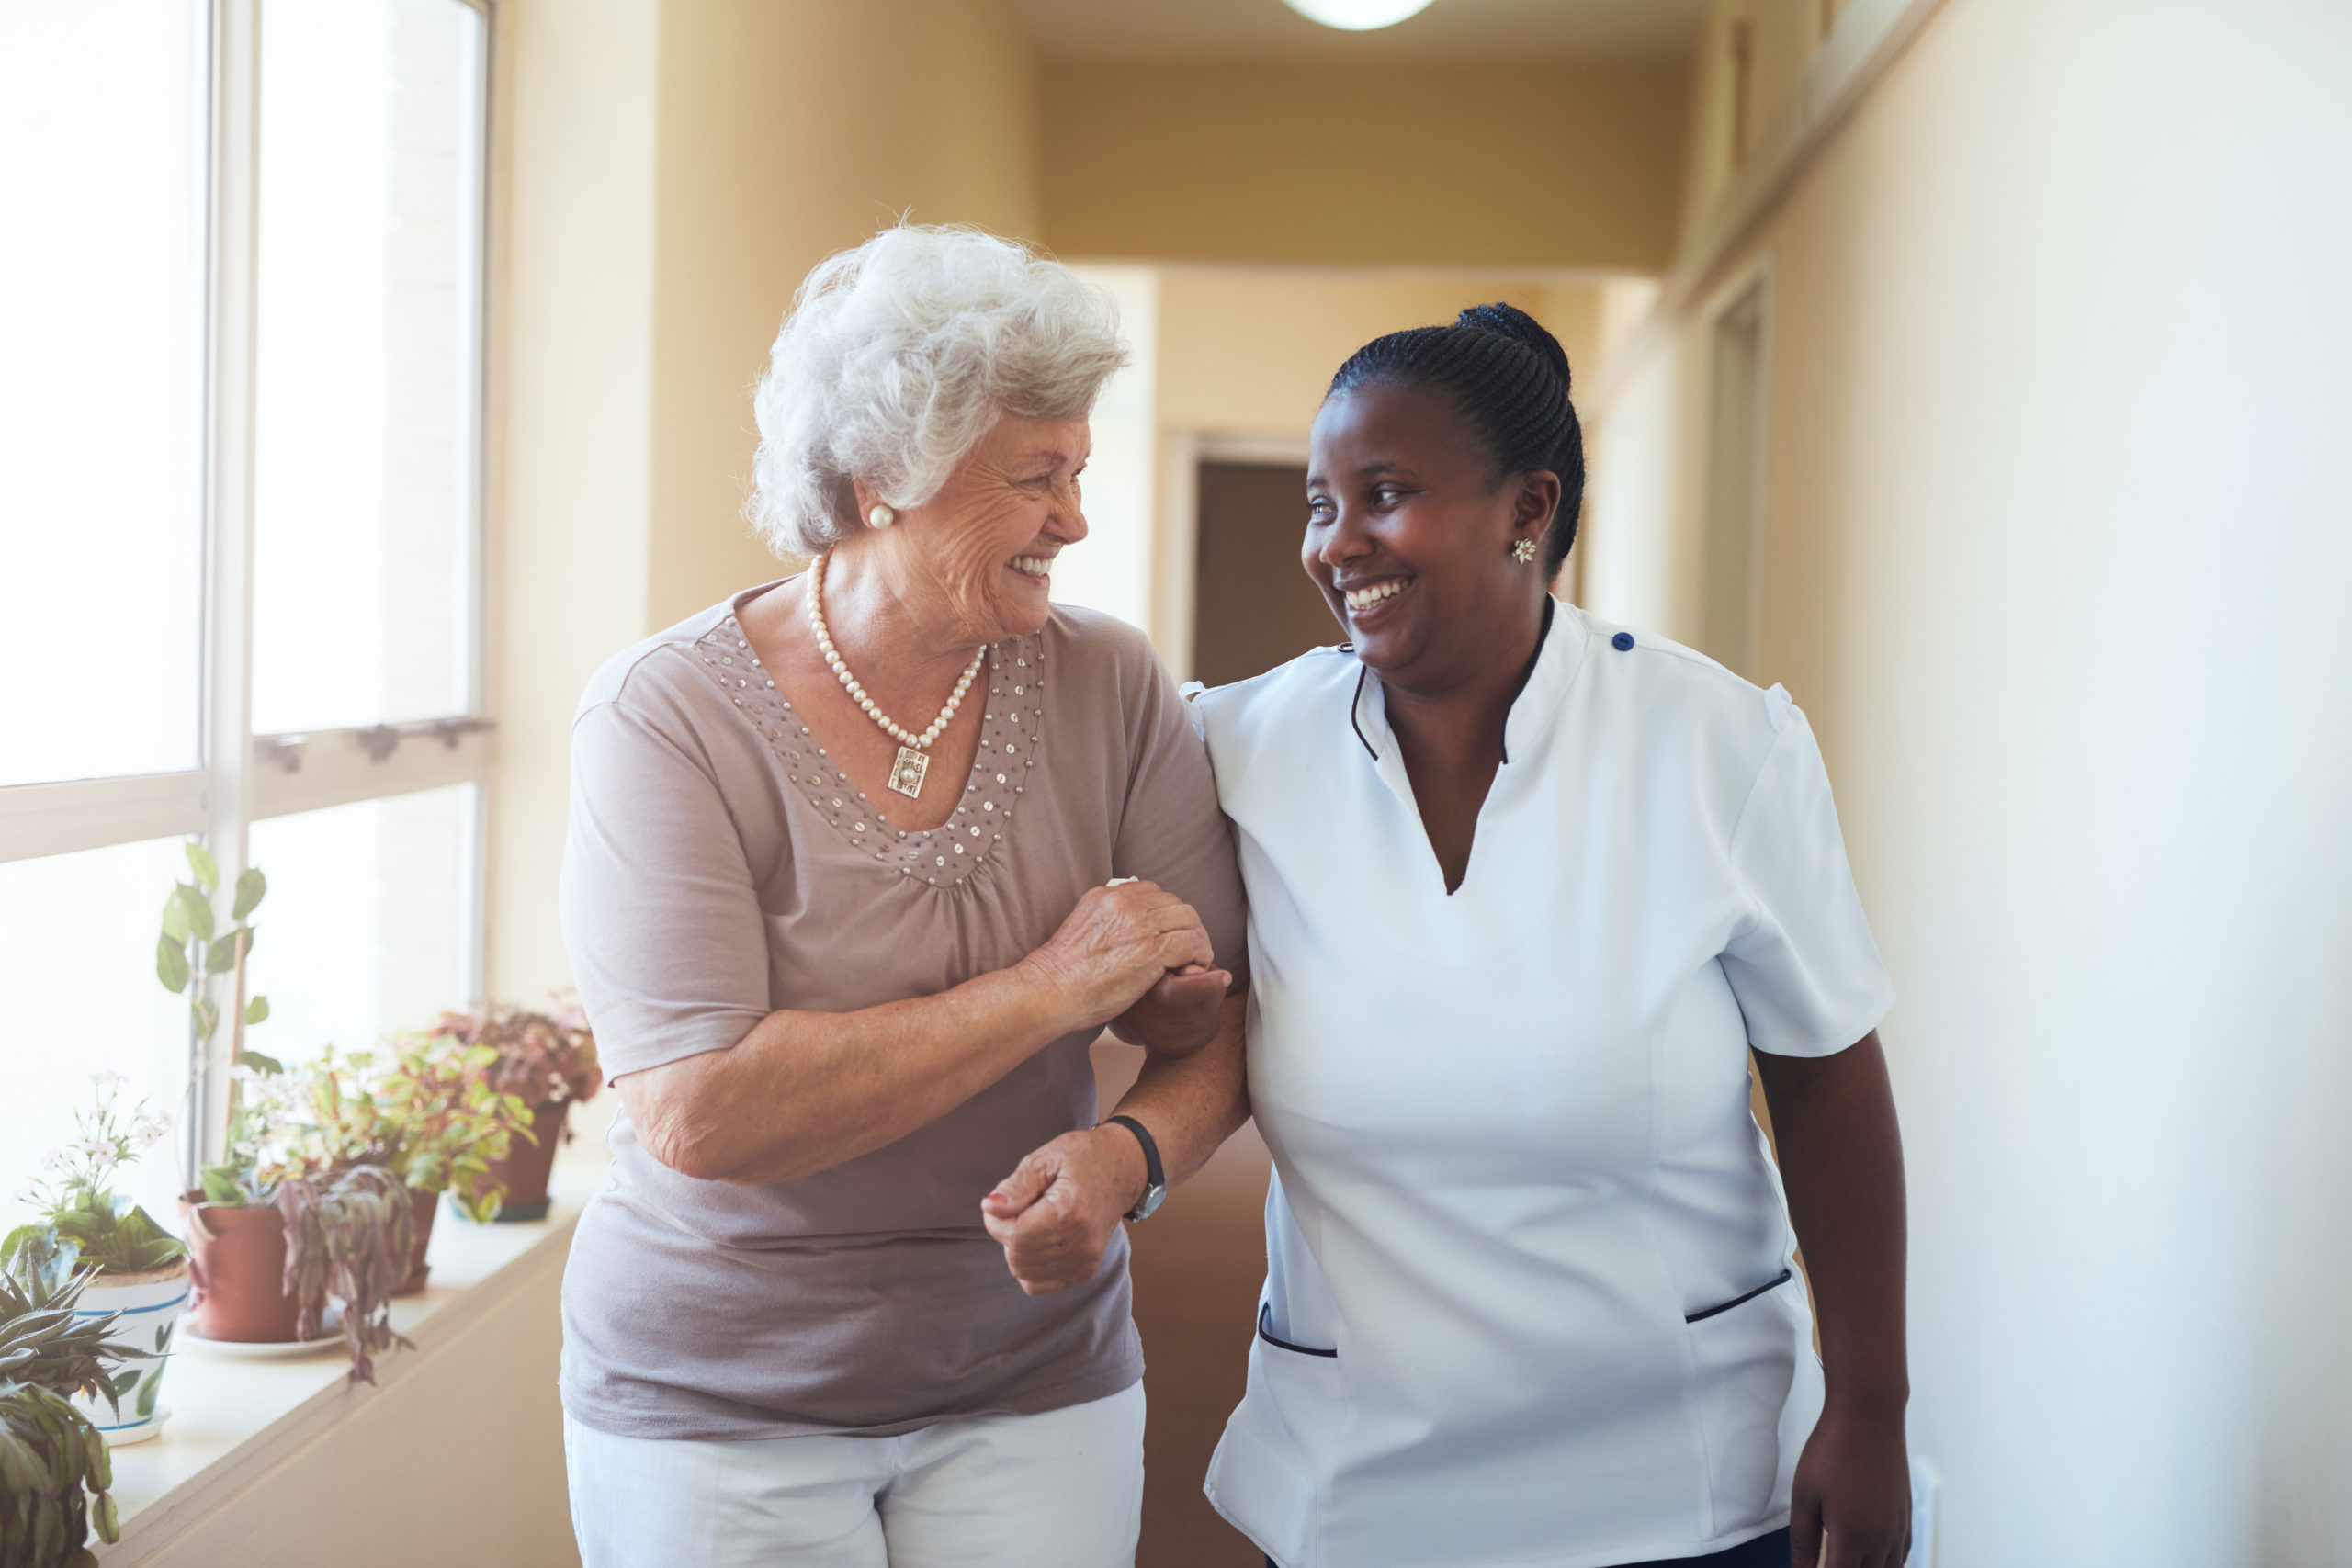 Belleview Suites at DTC | Smiling home caregiver and senior woman walking together